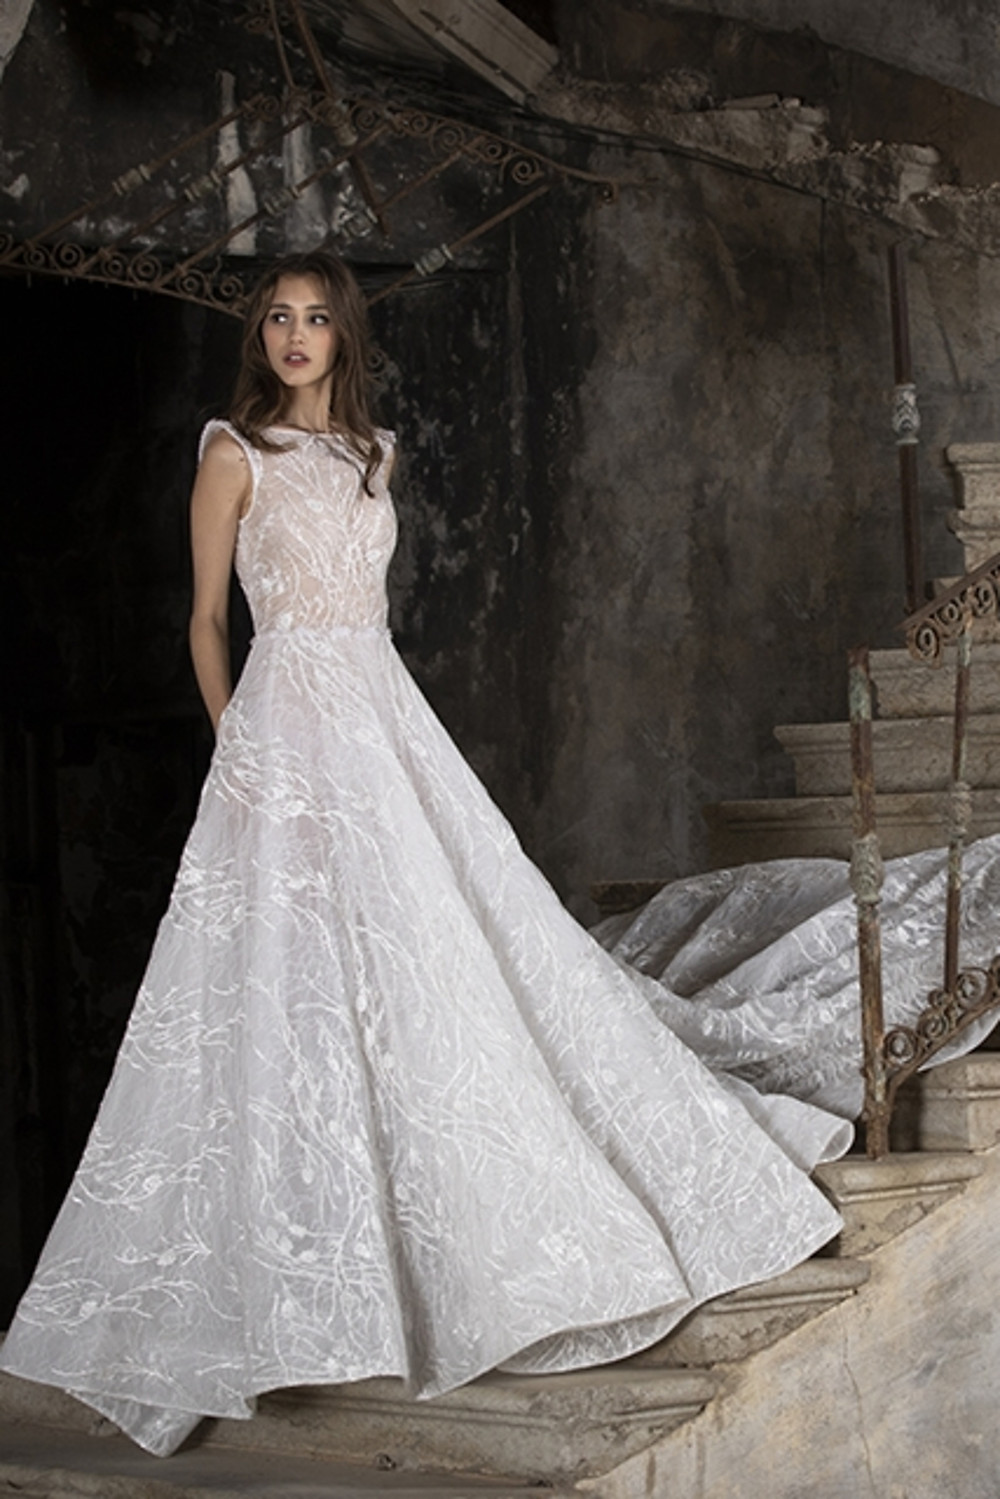 An A-line wedding gown with bold lace embroideries and boat neckline